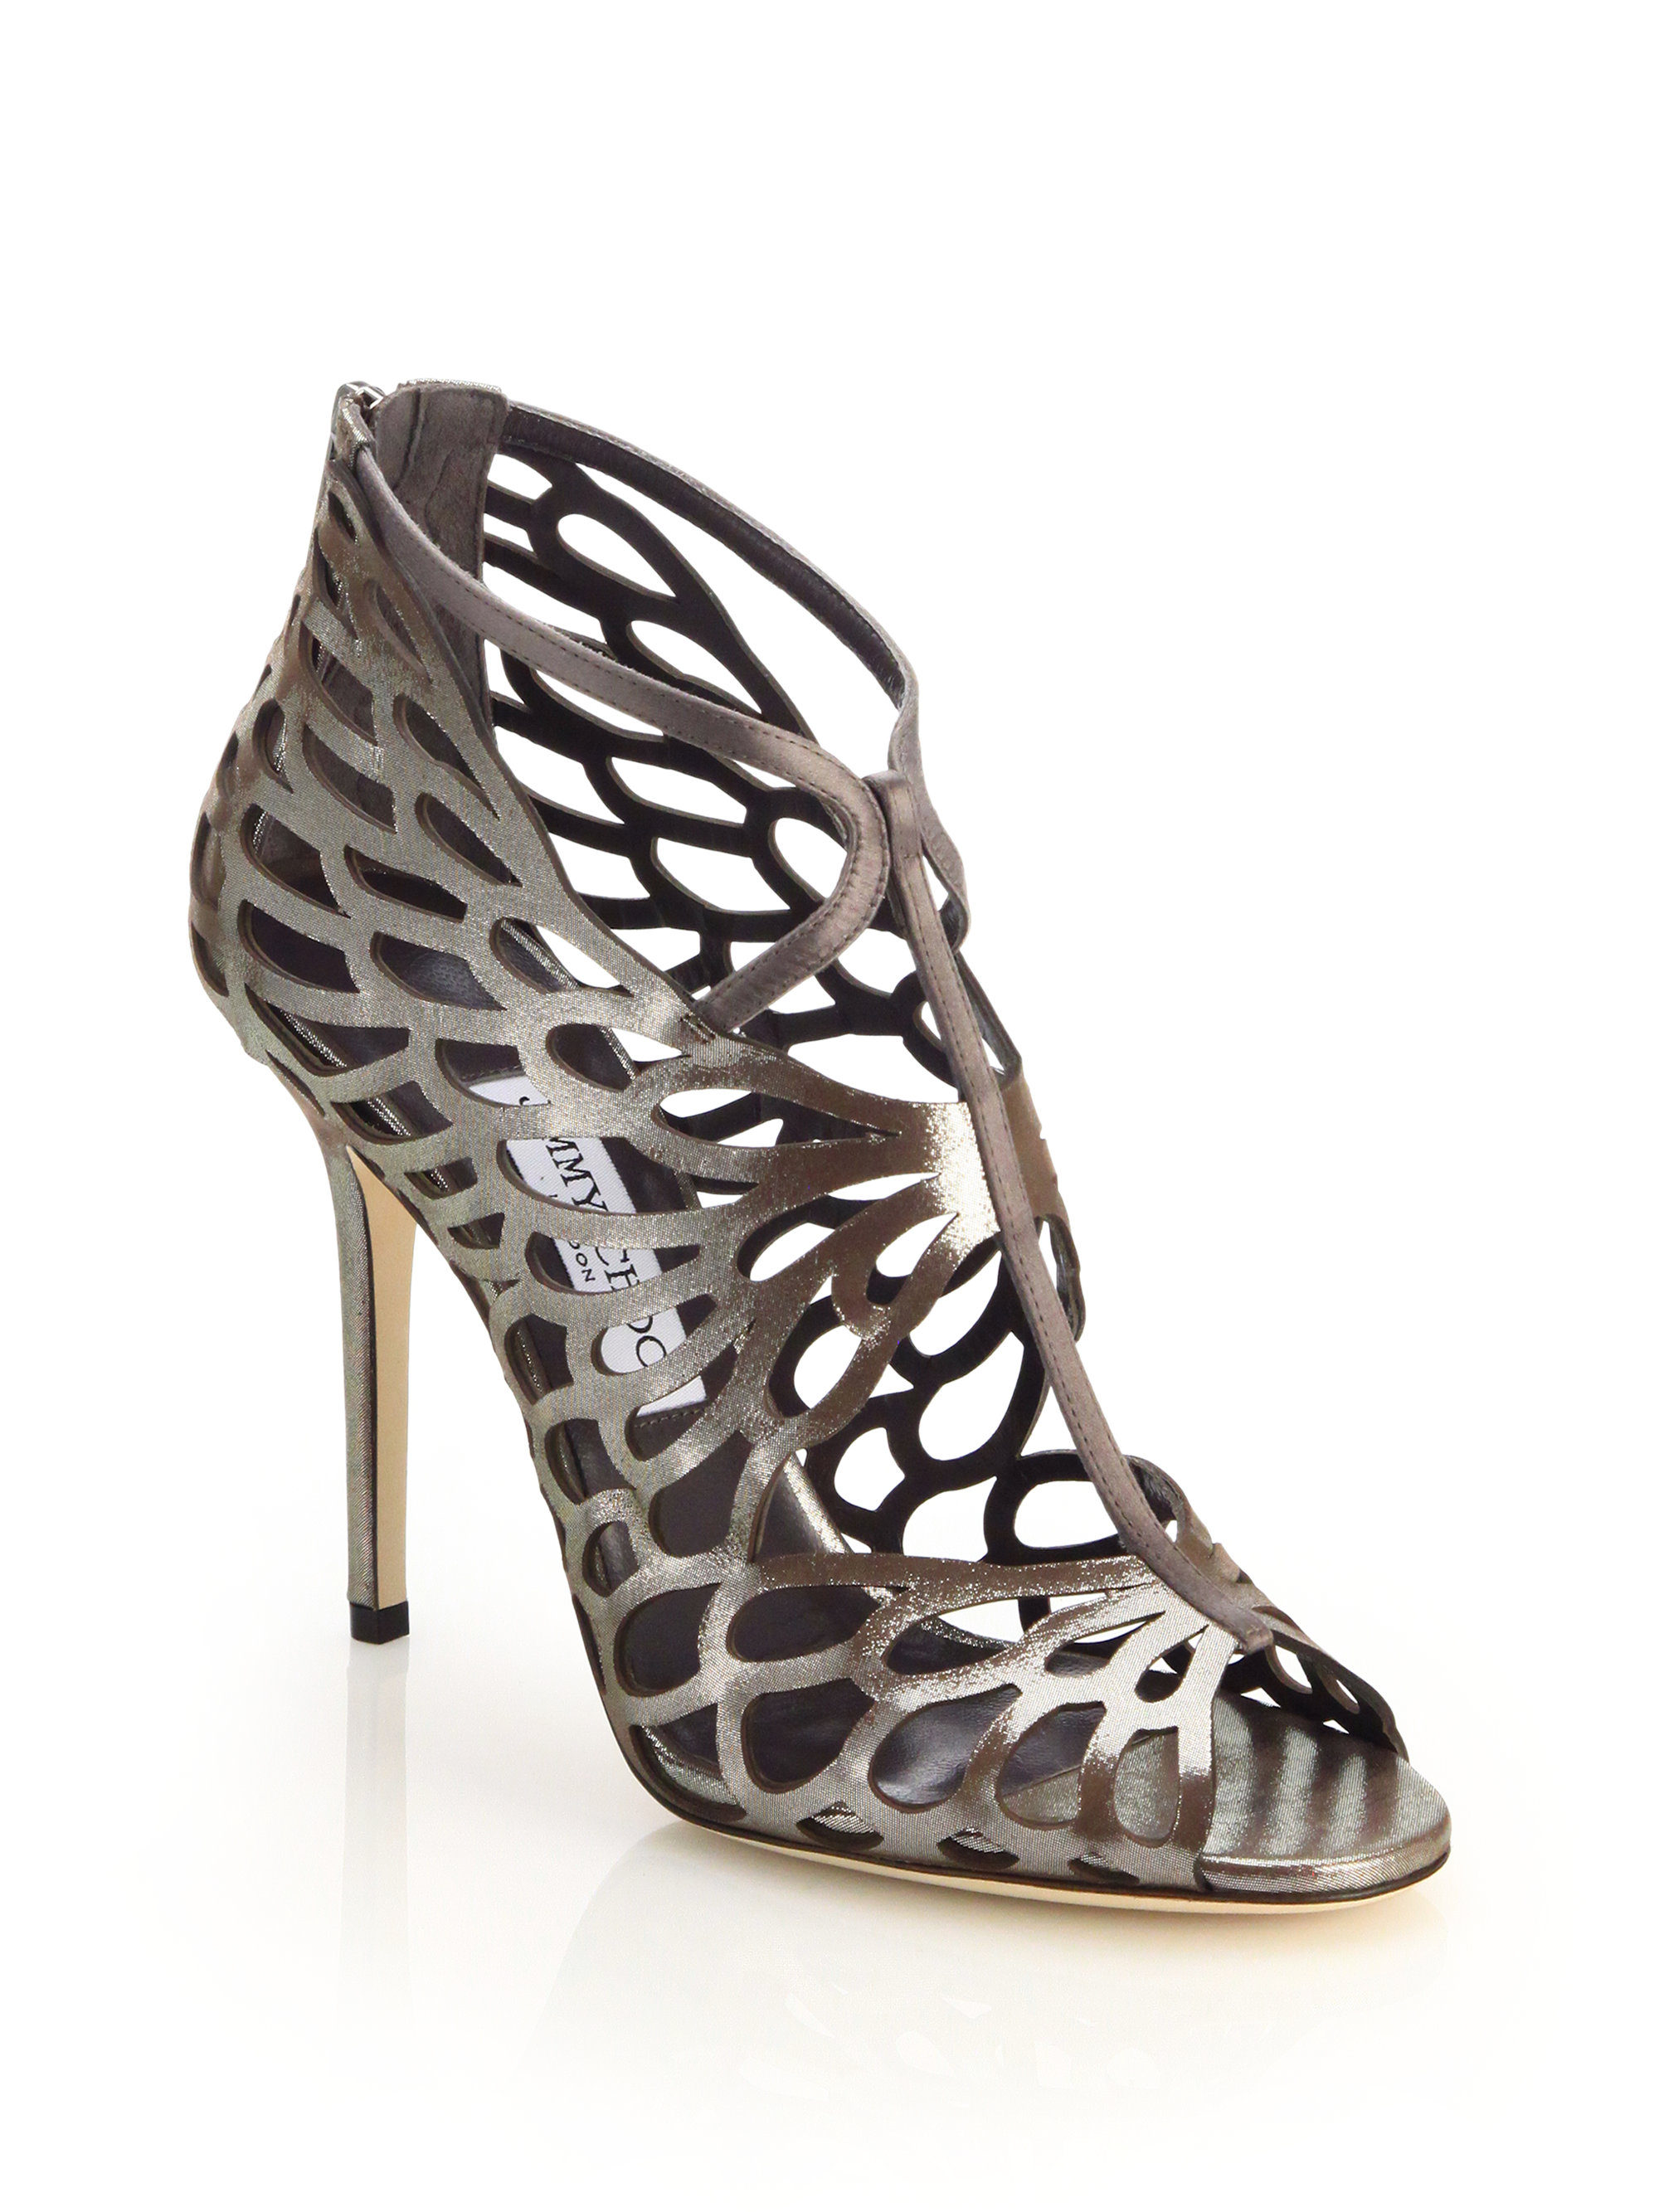 Jimmy Choo Snakeskin-Trimmed Laser Cut Sandals buy cheap 100% authentic store online buy cheap exclusive cheap from china buy cheap online SVRNXXCG1